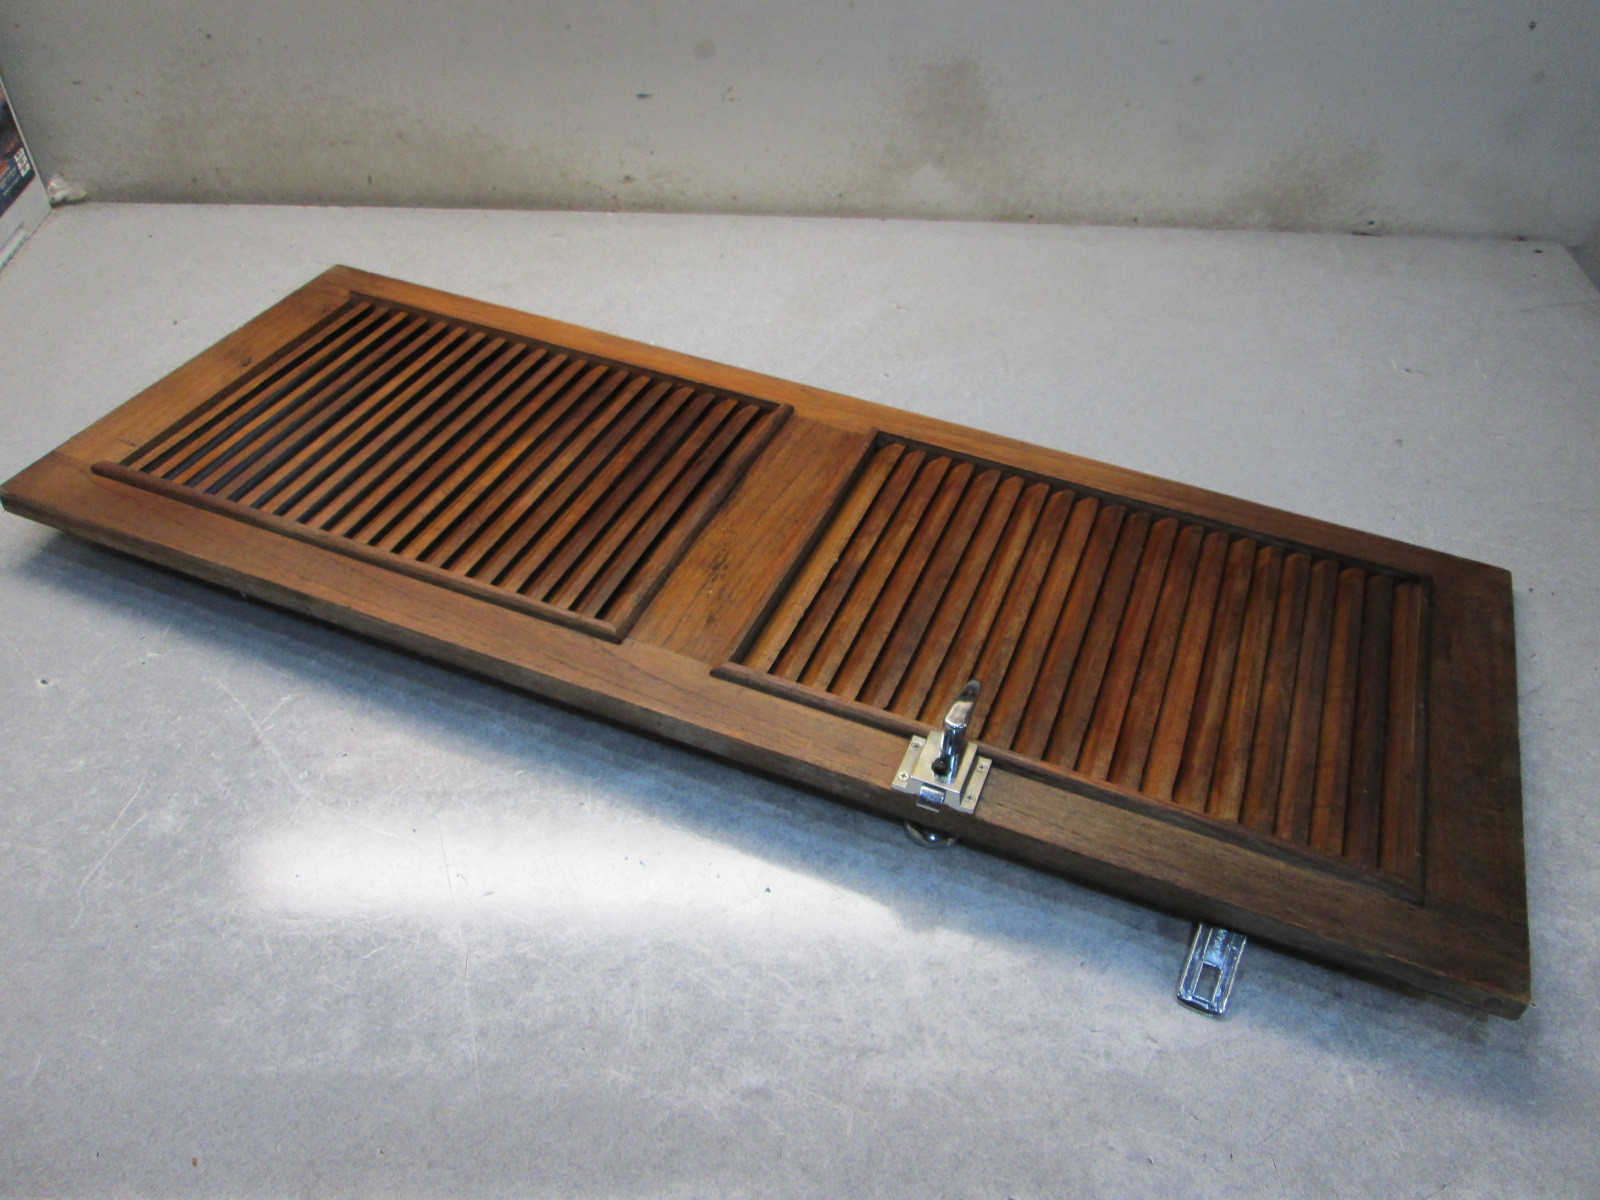 1989 thompson carrera 205 teak cuddy cabin slotted door 44 for Boat cabin entry doors